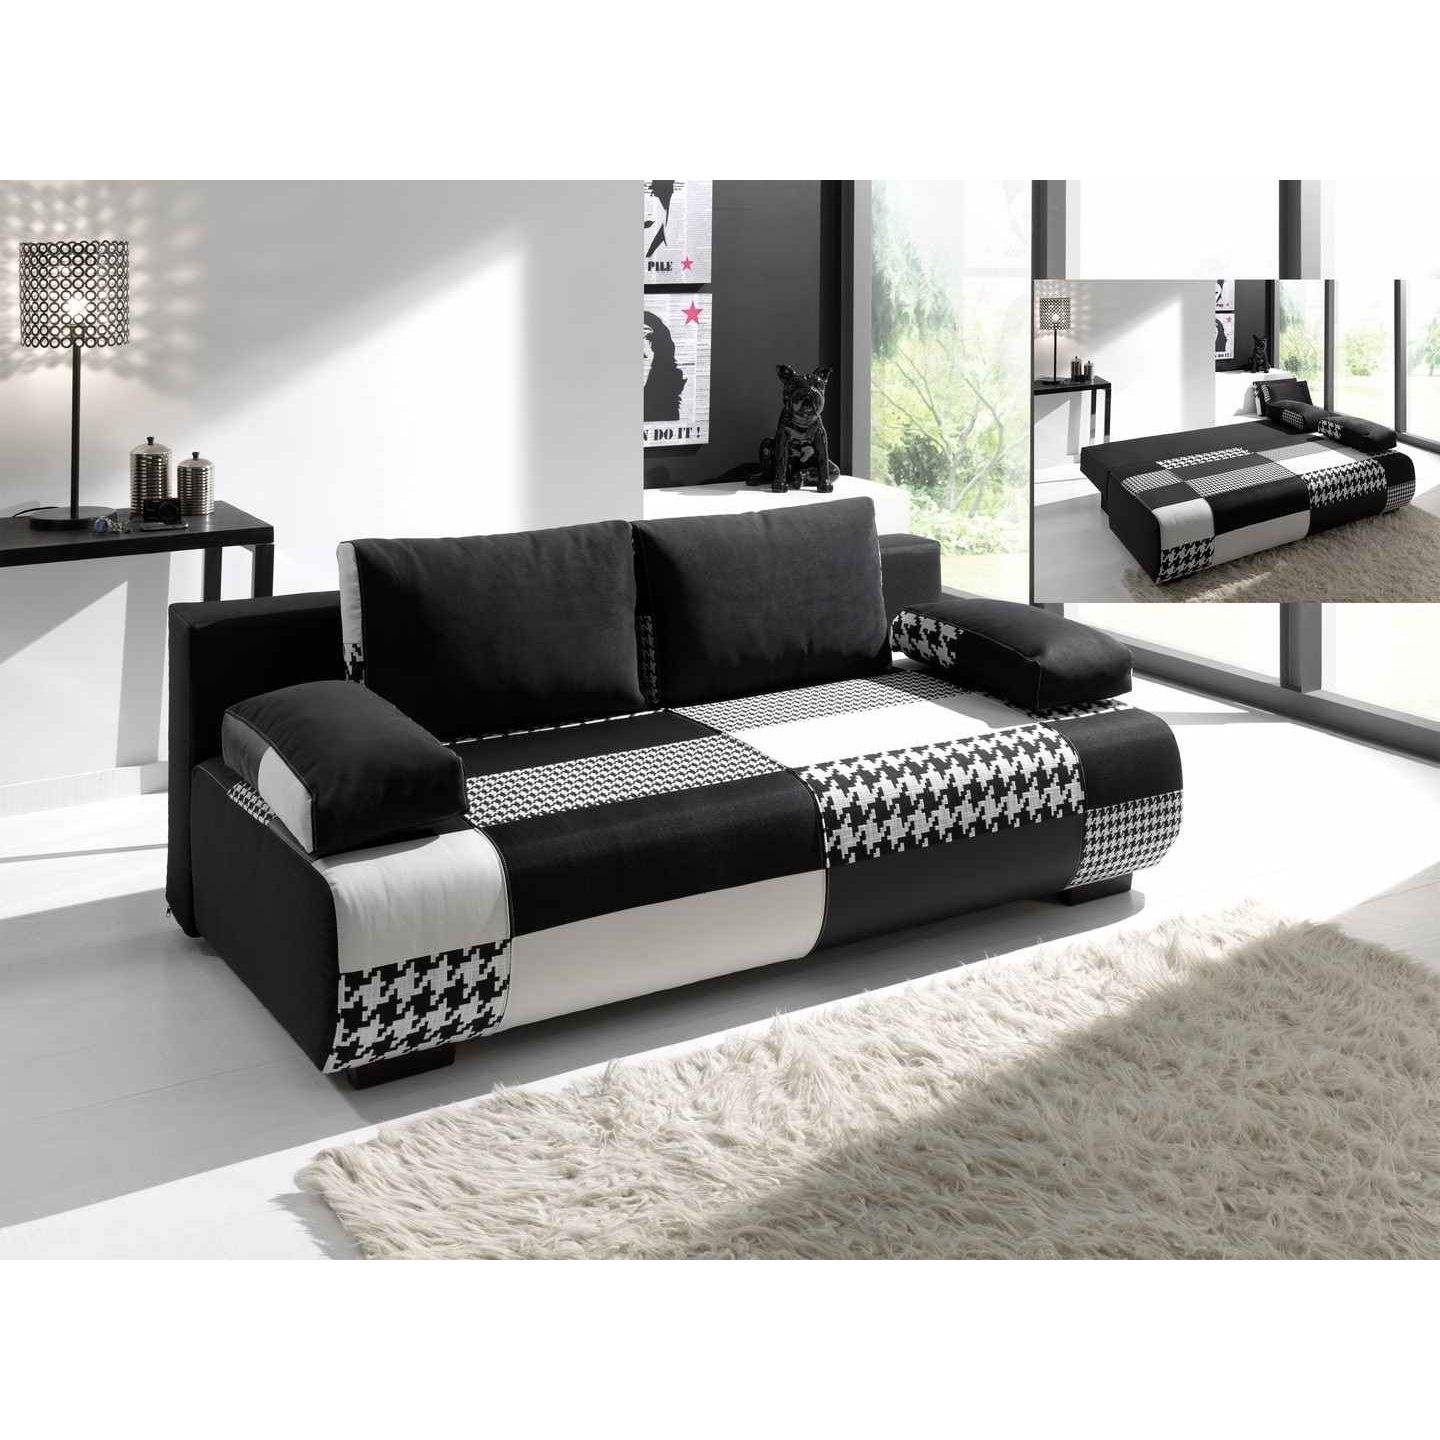 deco in paris canape 3 places convertible en tissu noir malte malte noir. Black Bedroom Furniture Sets. Home Design Ideas